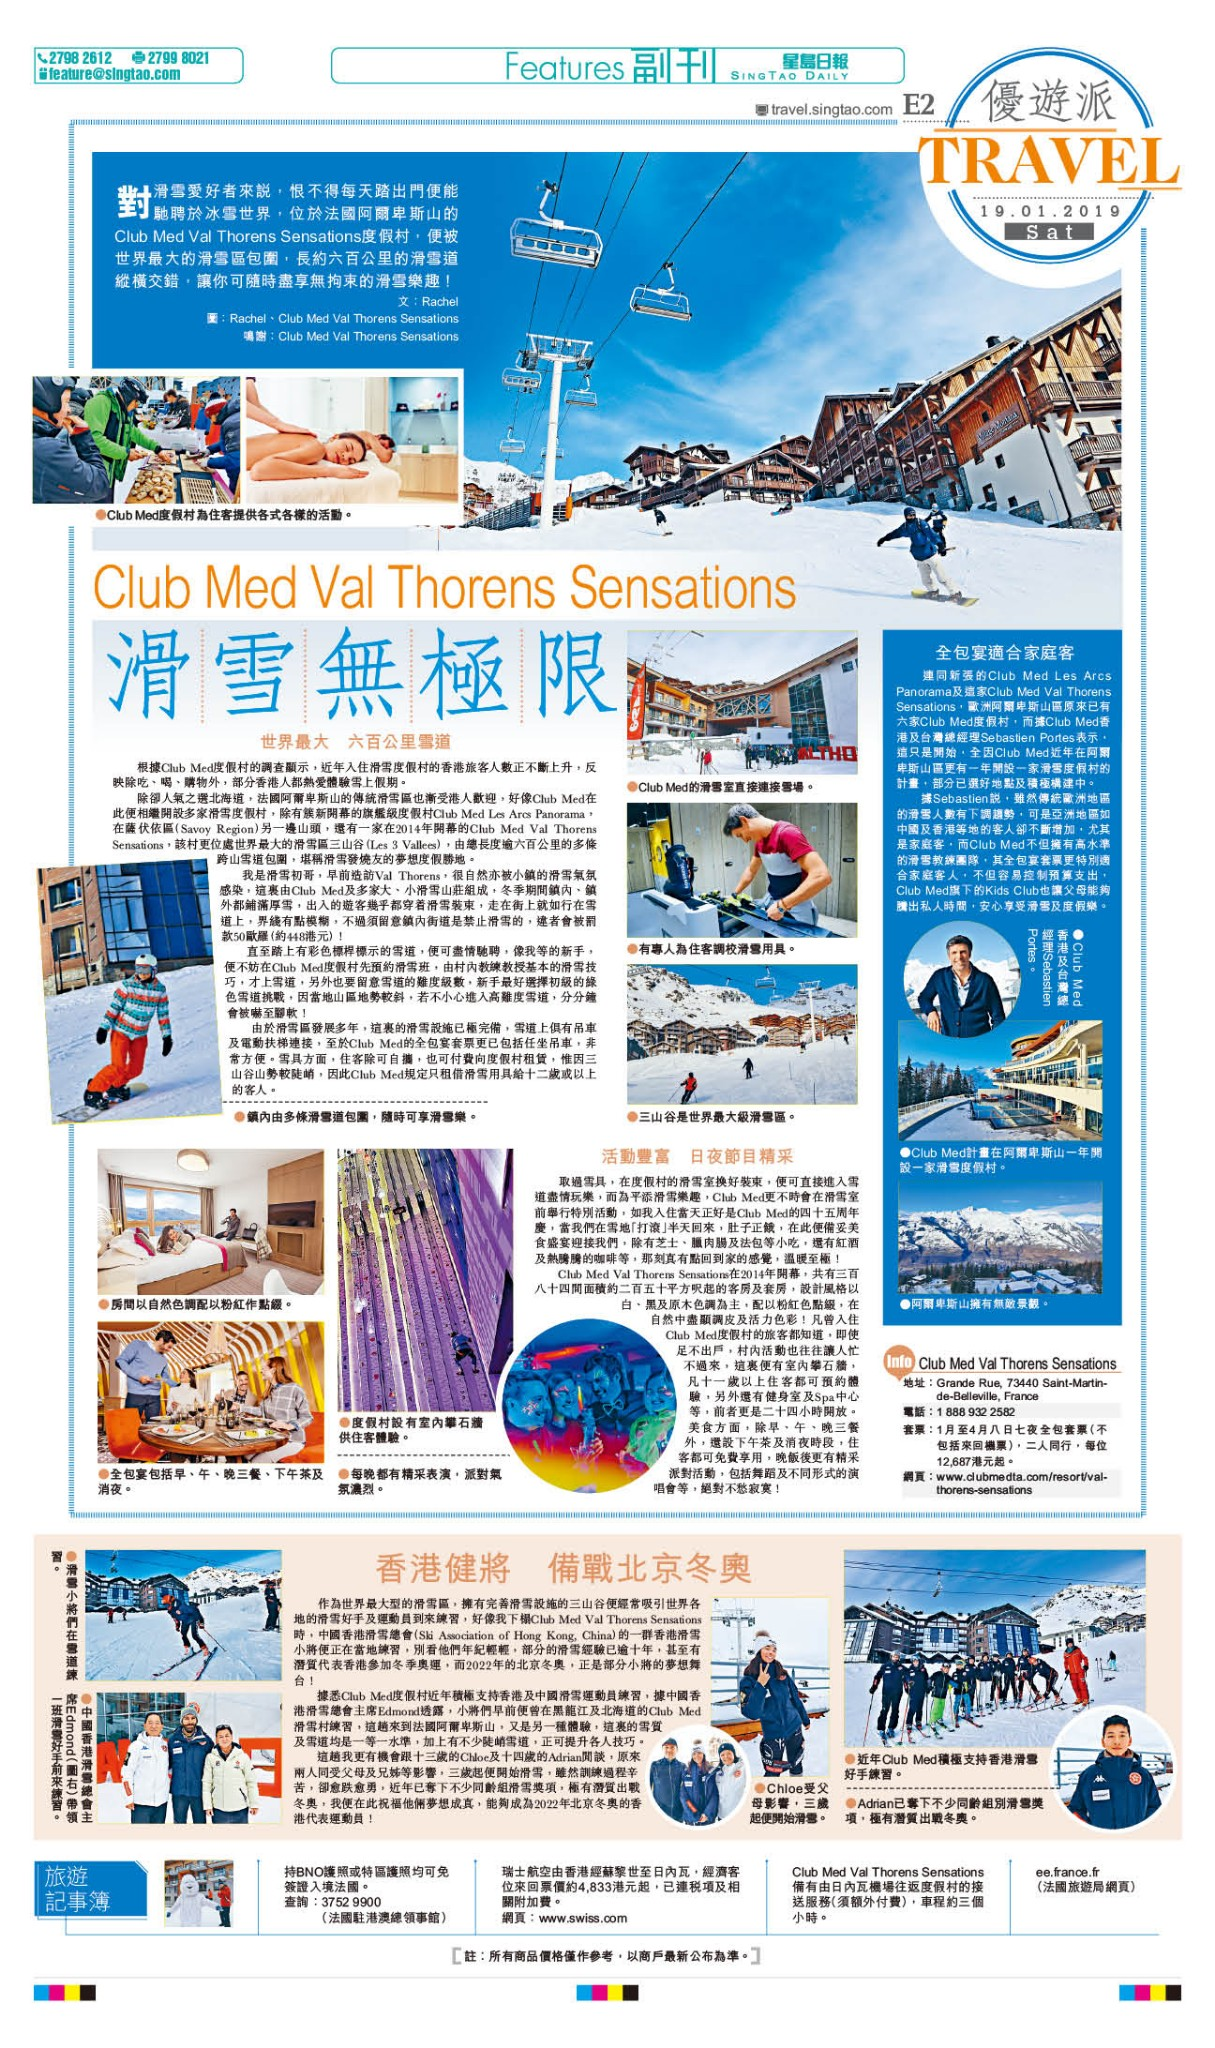 20190119 sing tao daily club med val thorens